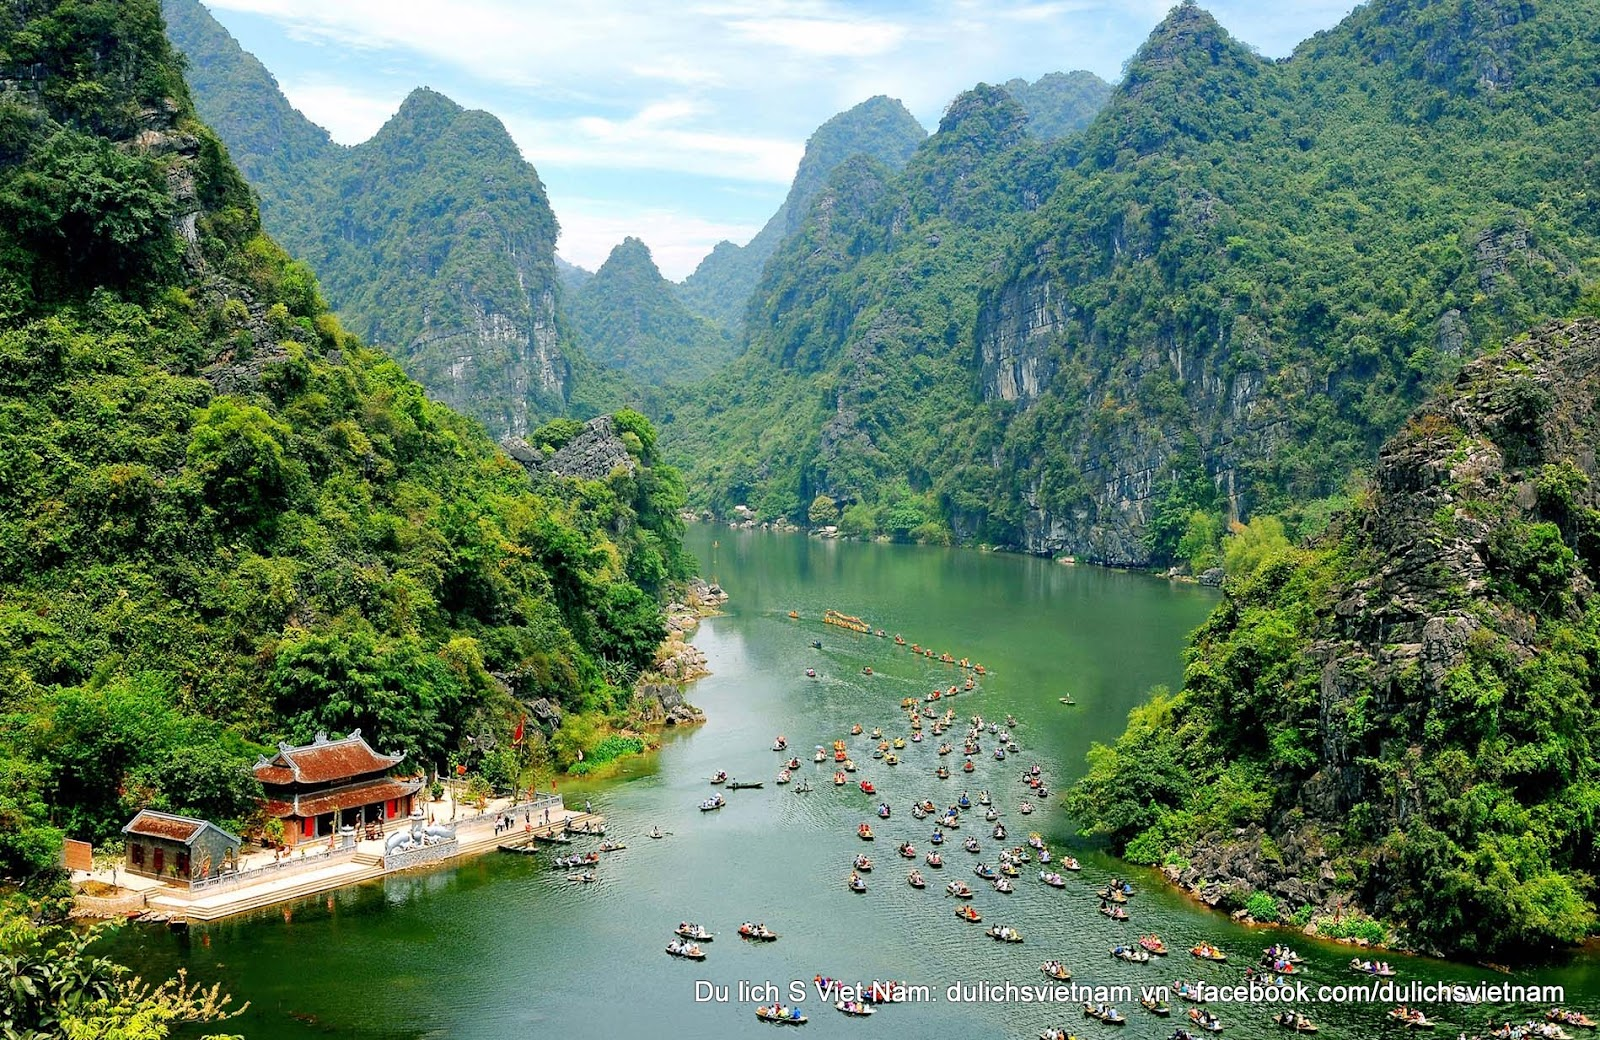 the Trang An complex consists of the Hoa Lu ancient citadel, Trang An-Tam Coc-Bich Dong natural scenic site, and the Hoa Lu primeval forest. The complex is often called Vietnam's Ha Long Bay on land.